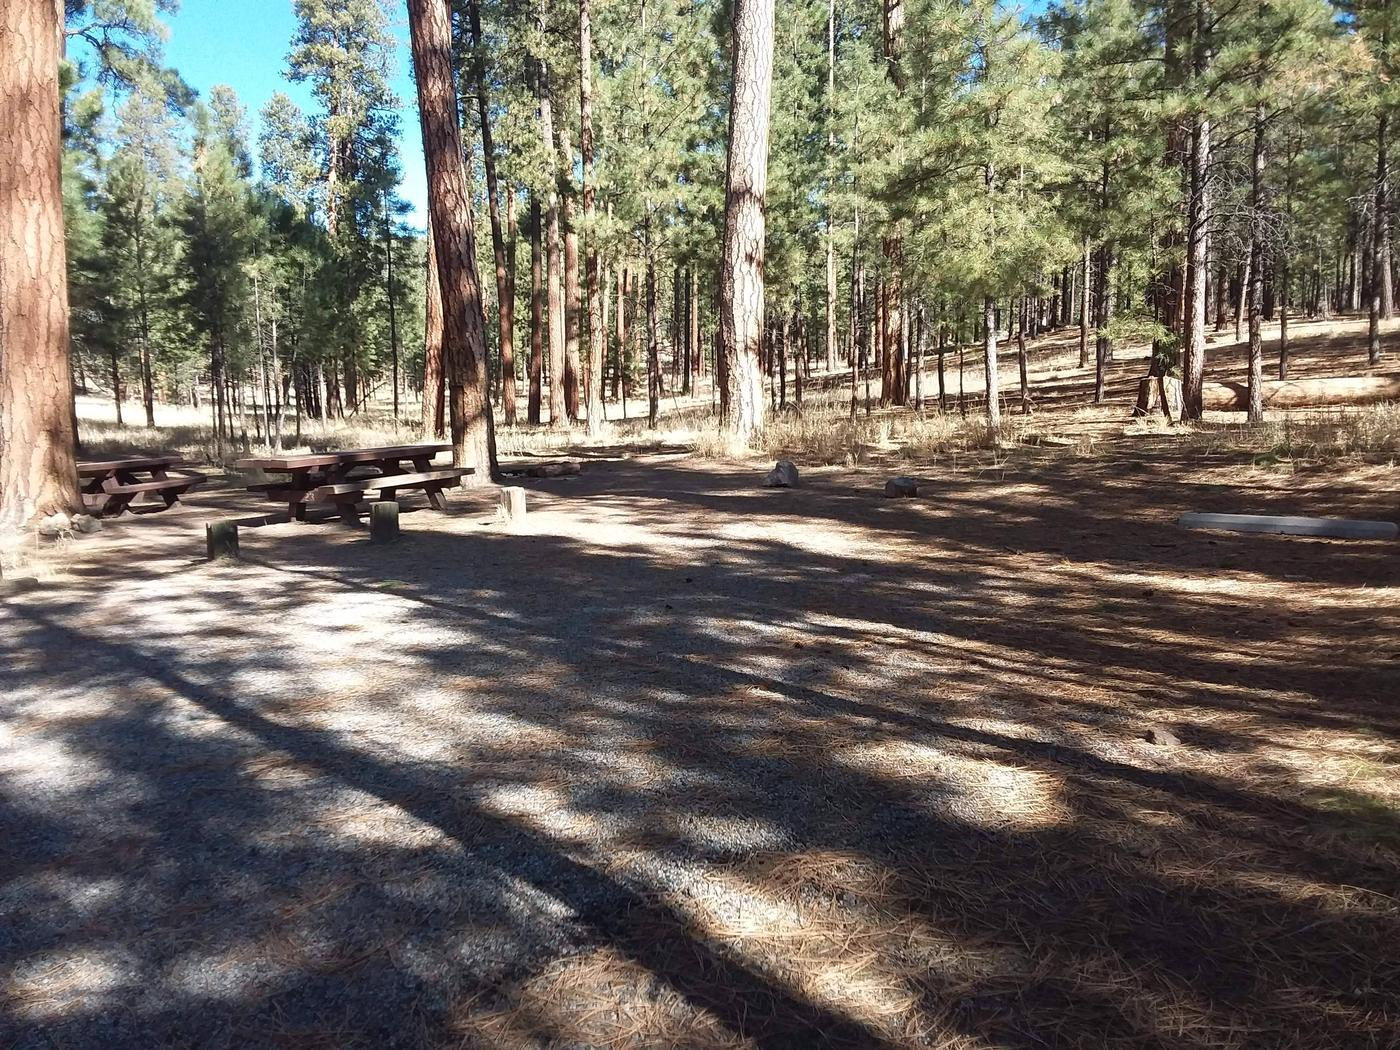 Site 23 designed with a double driveway and provides two picnic tables and a firepit for larger groups.Site 23